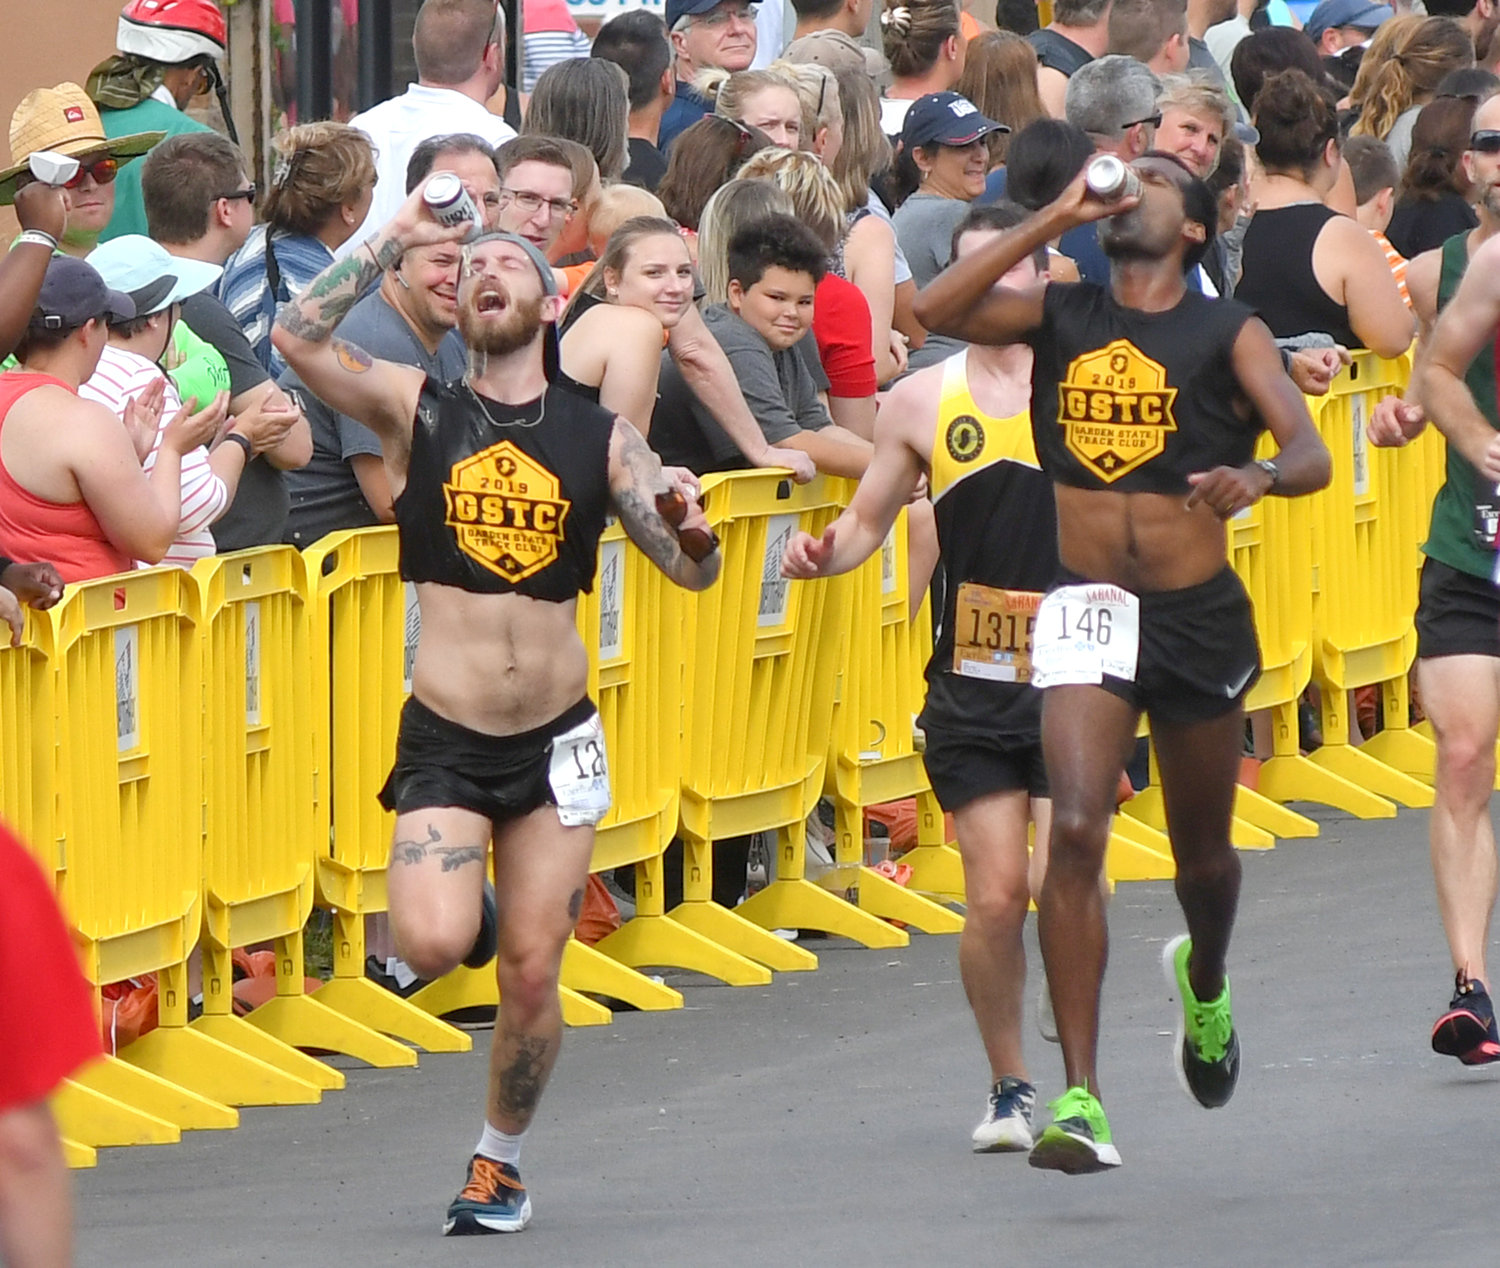 CHEERS — Garden State Track Club teammates Brendan Conway of Ridgefield Park, NJ, left, and Sean Donohue, Keyport, NJ, each chug a Utica Club beer on their way to the finish line at the Boilermaker 15K. Both finished the race in 1:04:26.